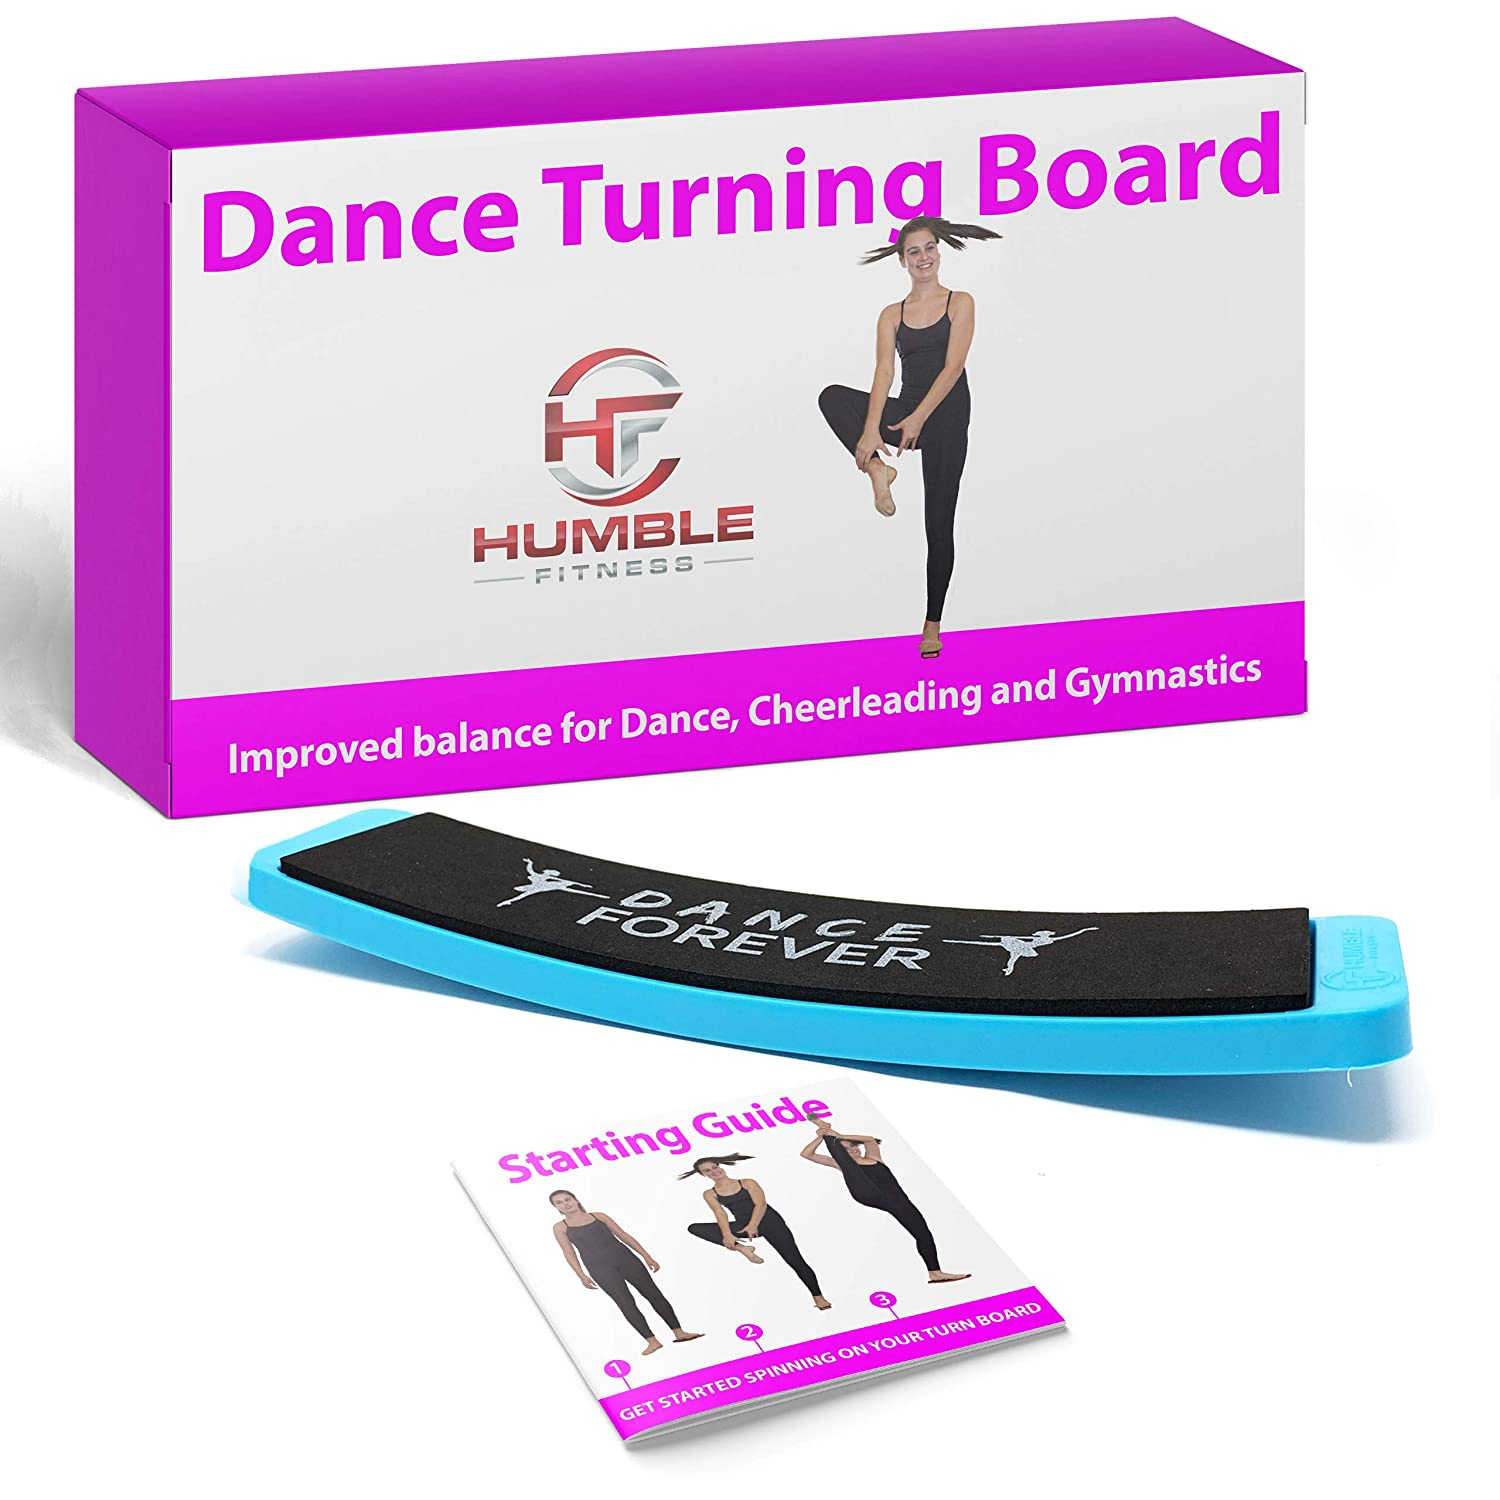 Humble Fitness Turning Boards for Dancers Ballet Turning Boards for Improving Balance and Turns Figure Skating and Dance Training Equipment Gymnastic Balance Equipment and Turning Boards